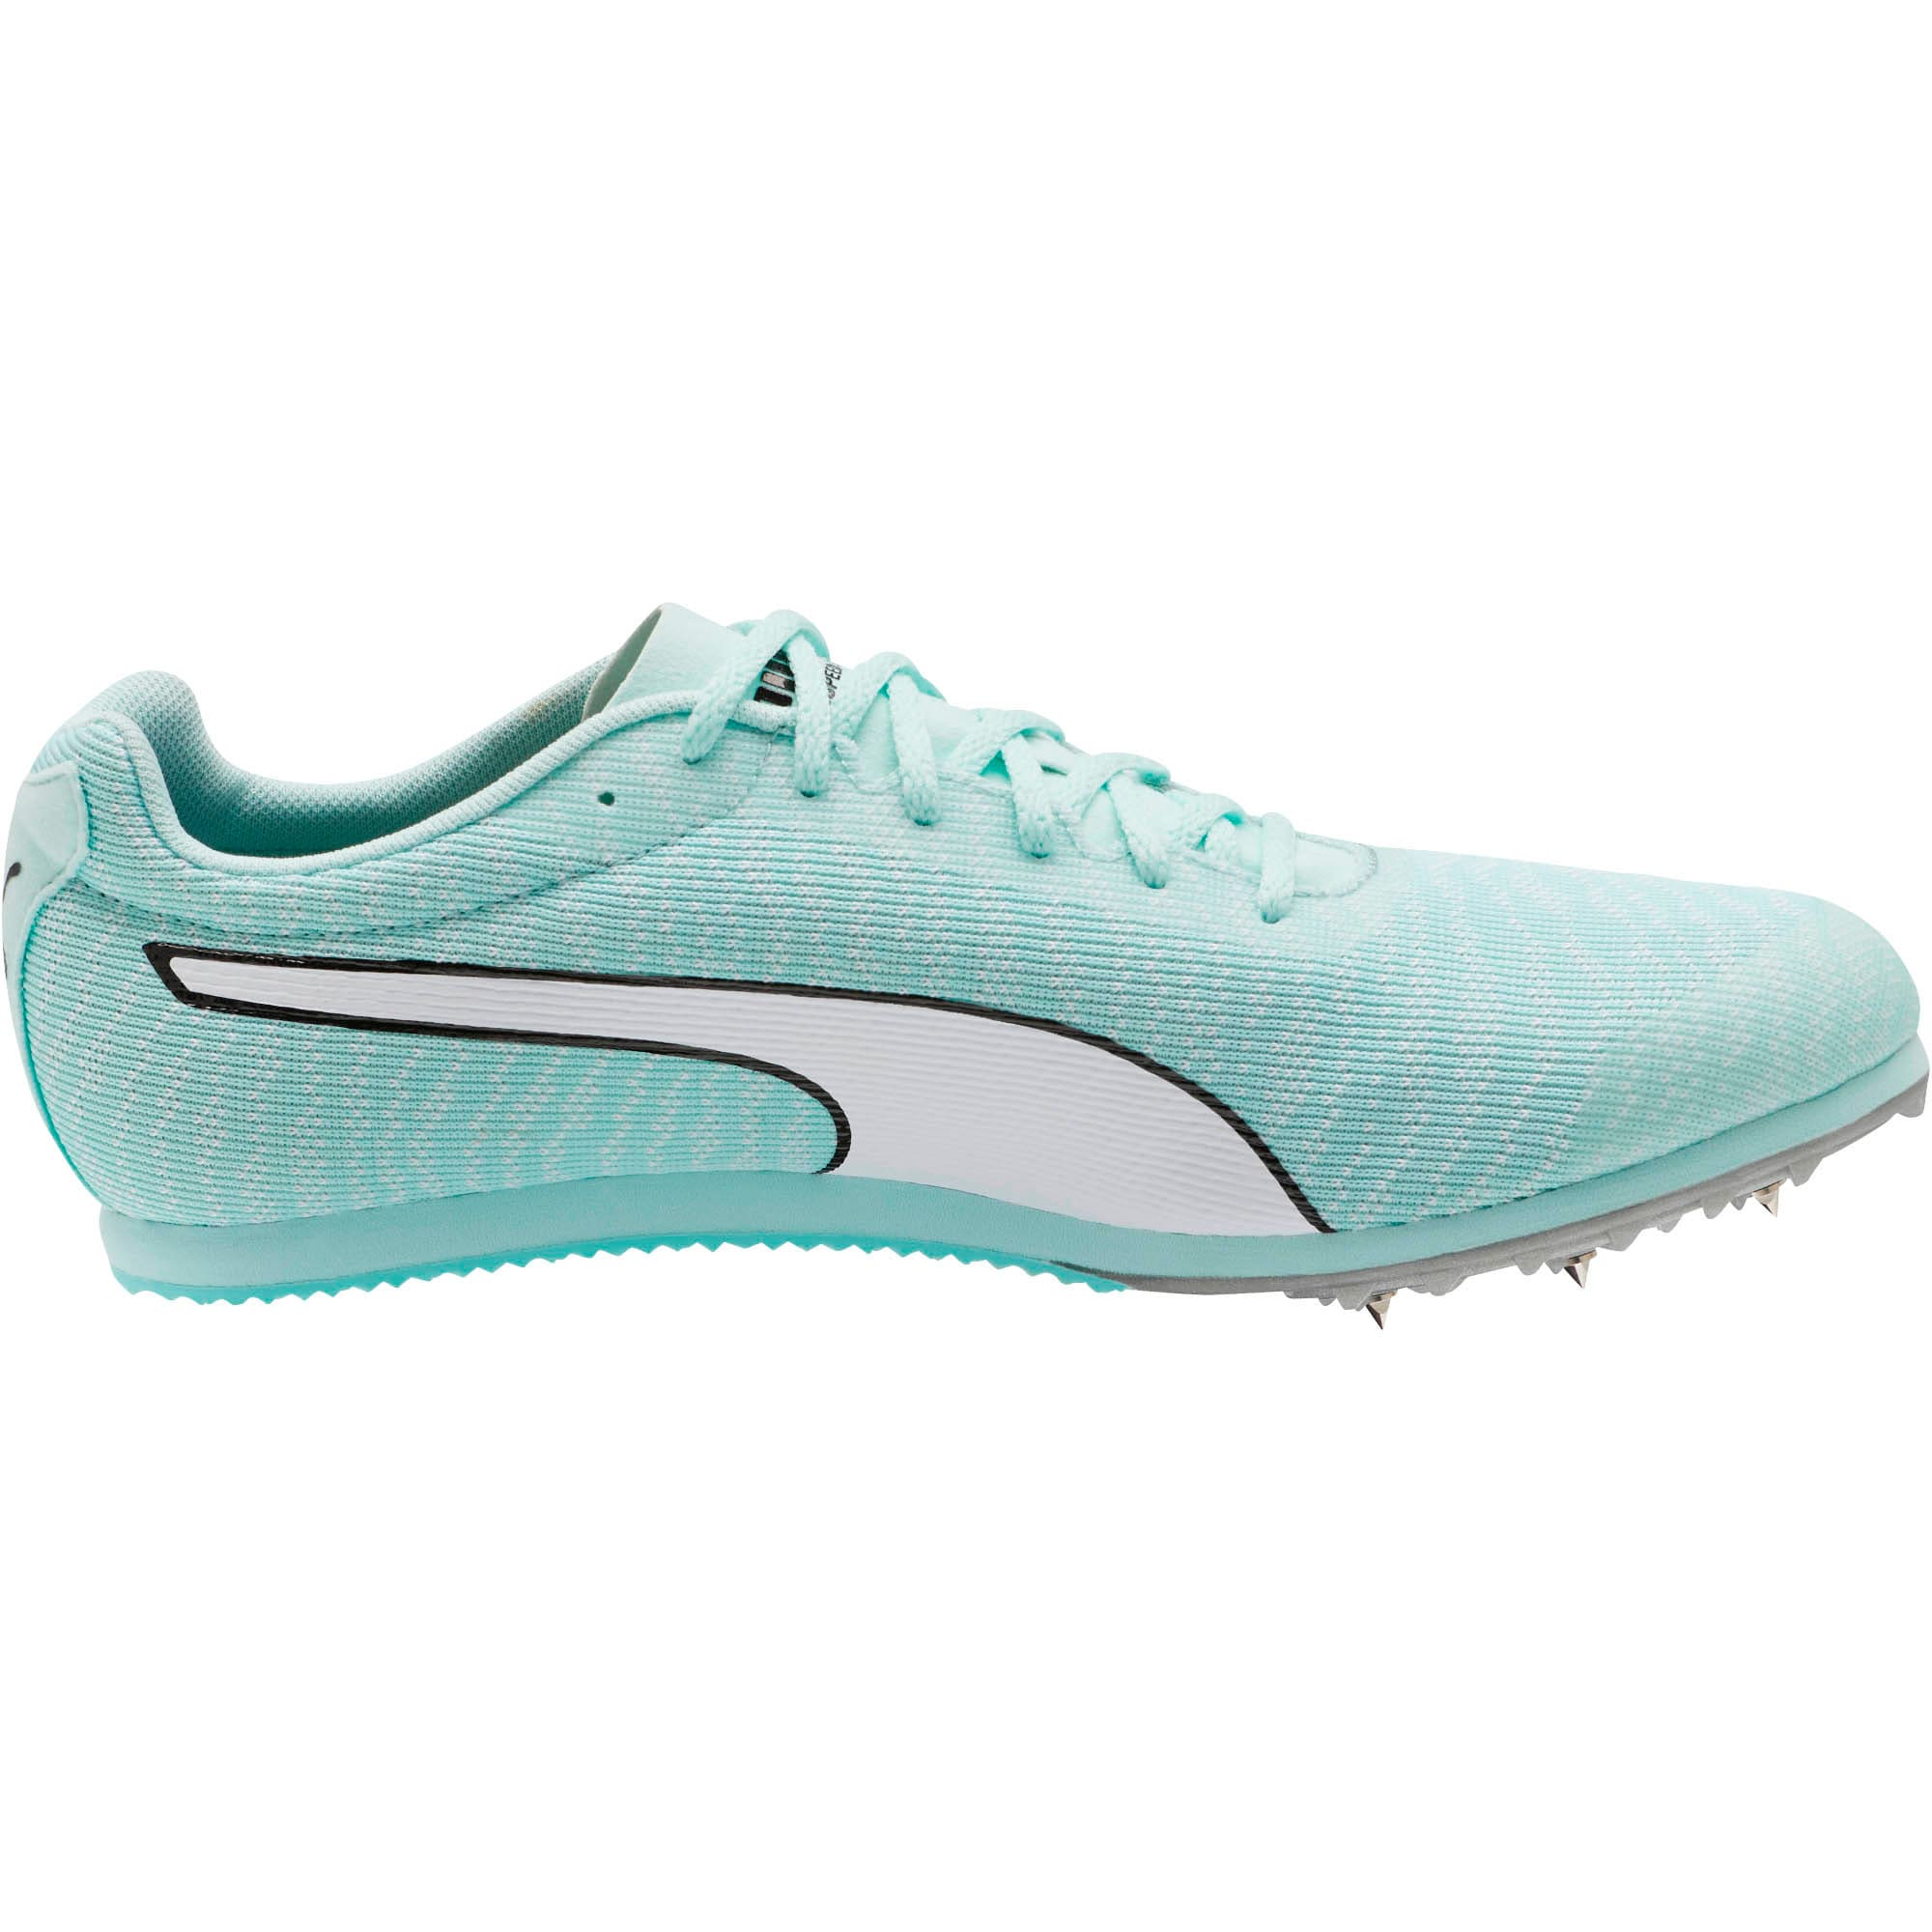 Thumbnail 4 of evoSPEED Star 6 Men's Track Spikes, Fair Aqua-Puma White, medium